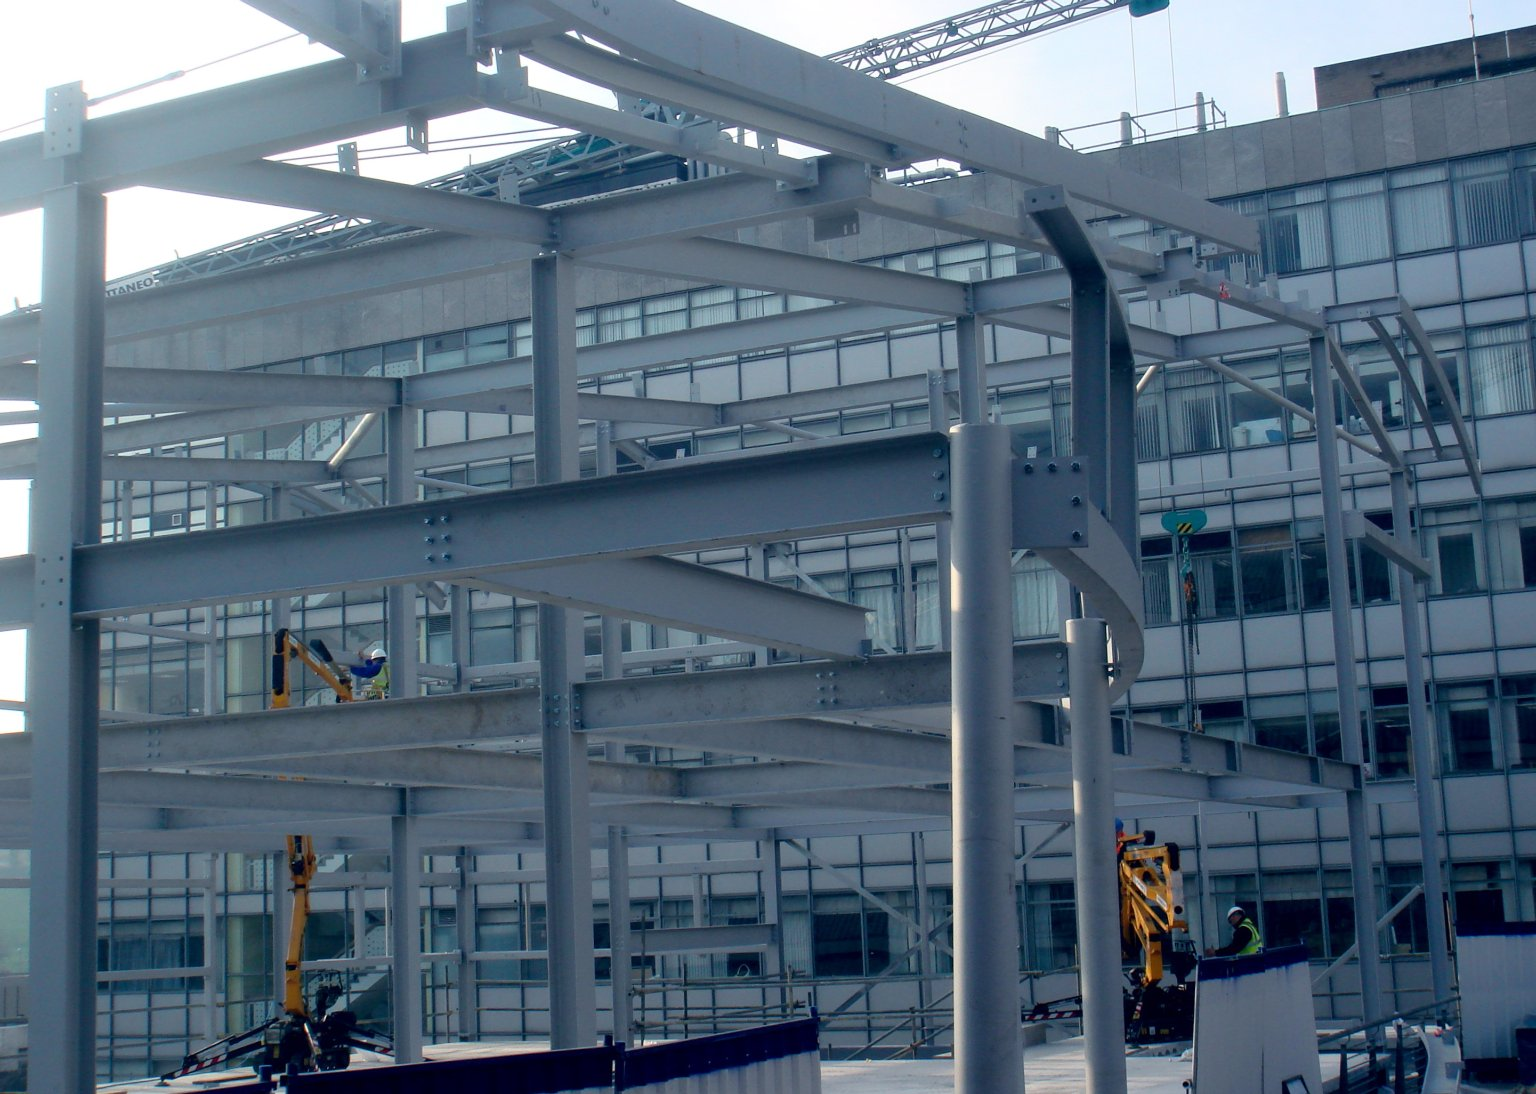 Adsetts Centre extension under construction